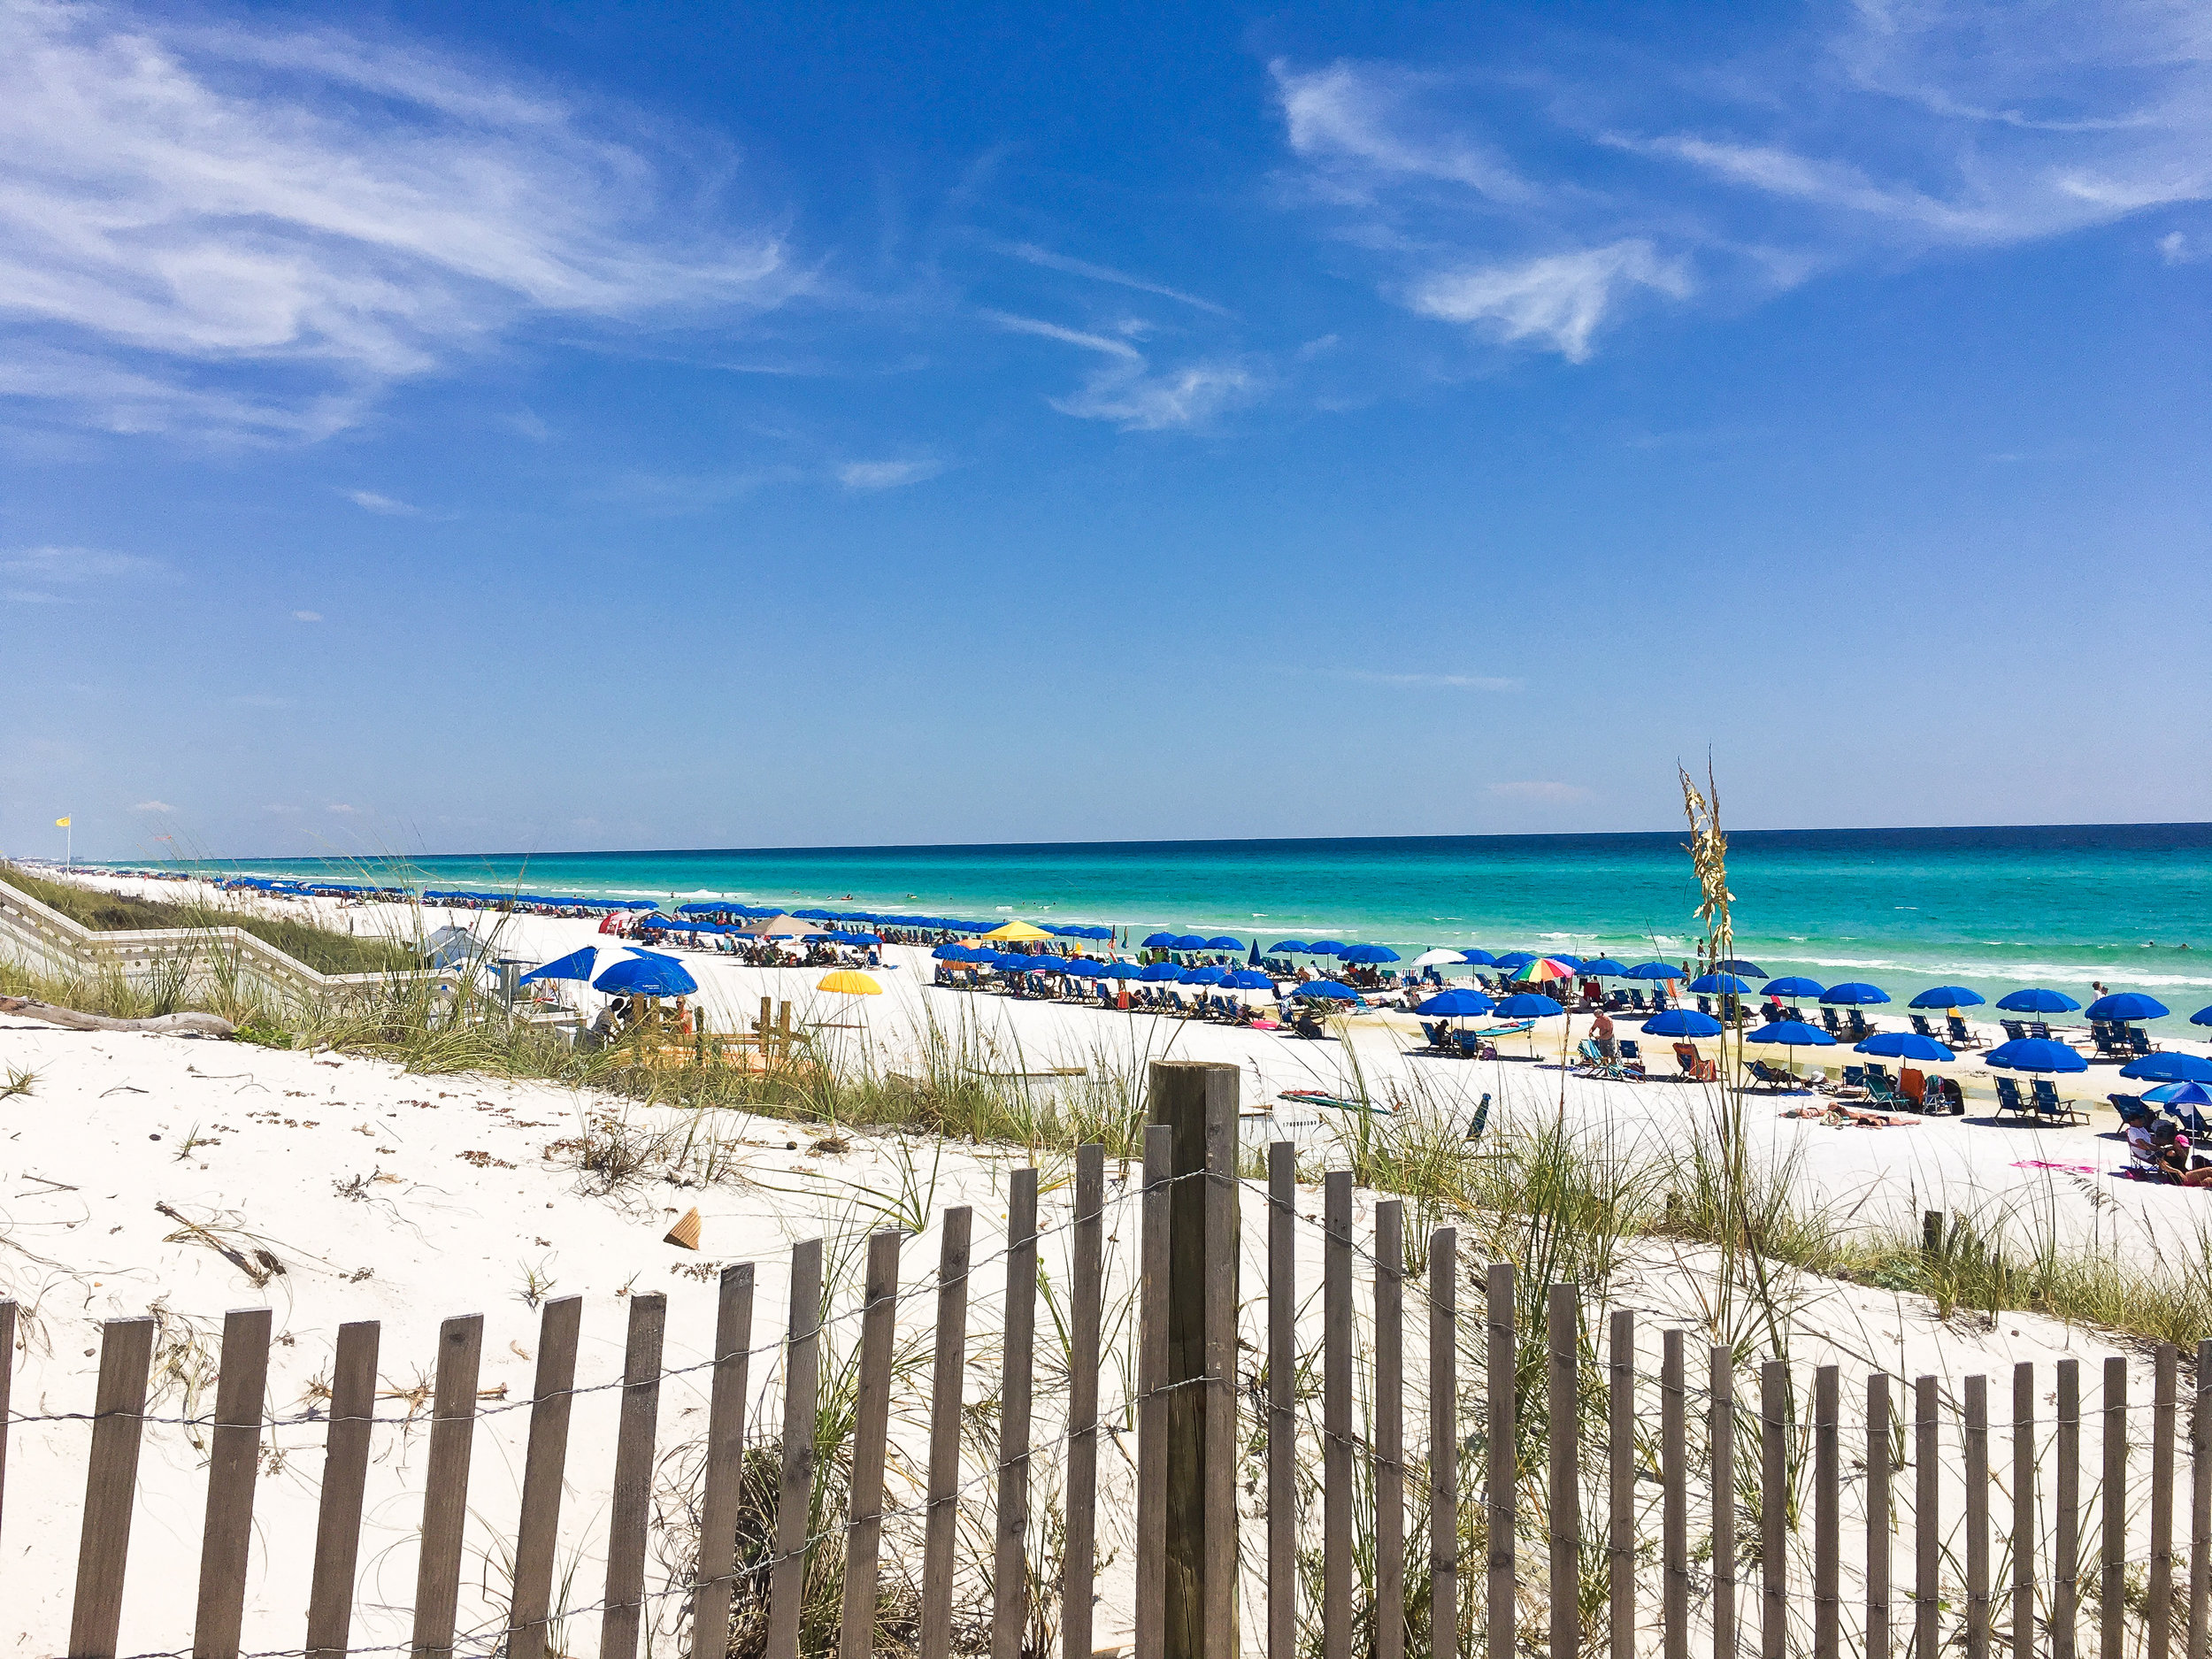 A beautiful beach day in Seaside, Florida. Photo by Chic Travels.